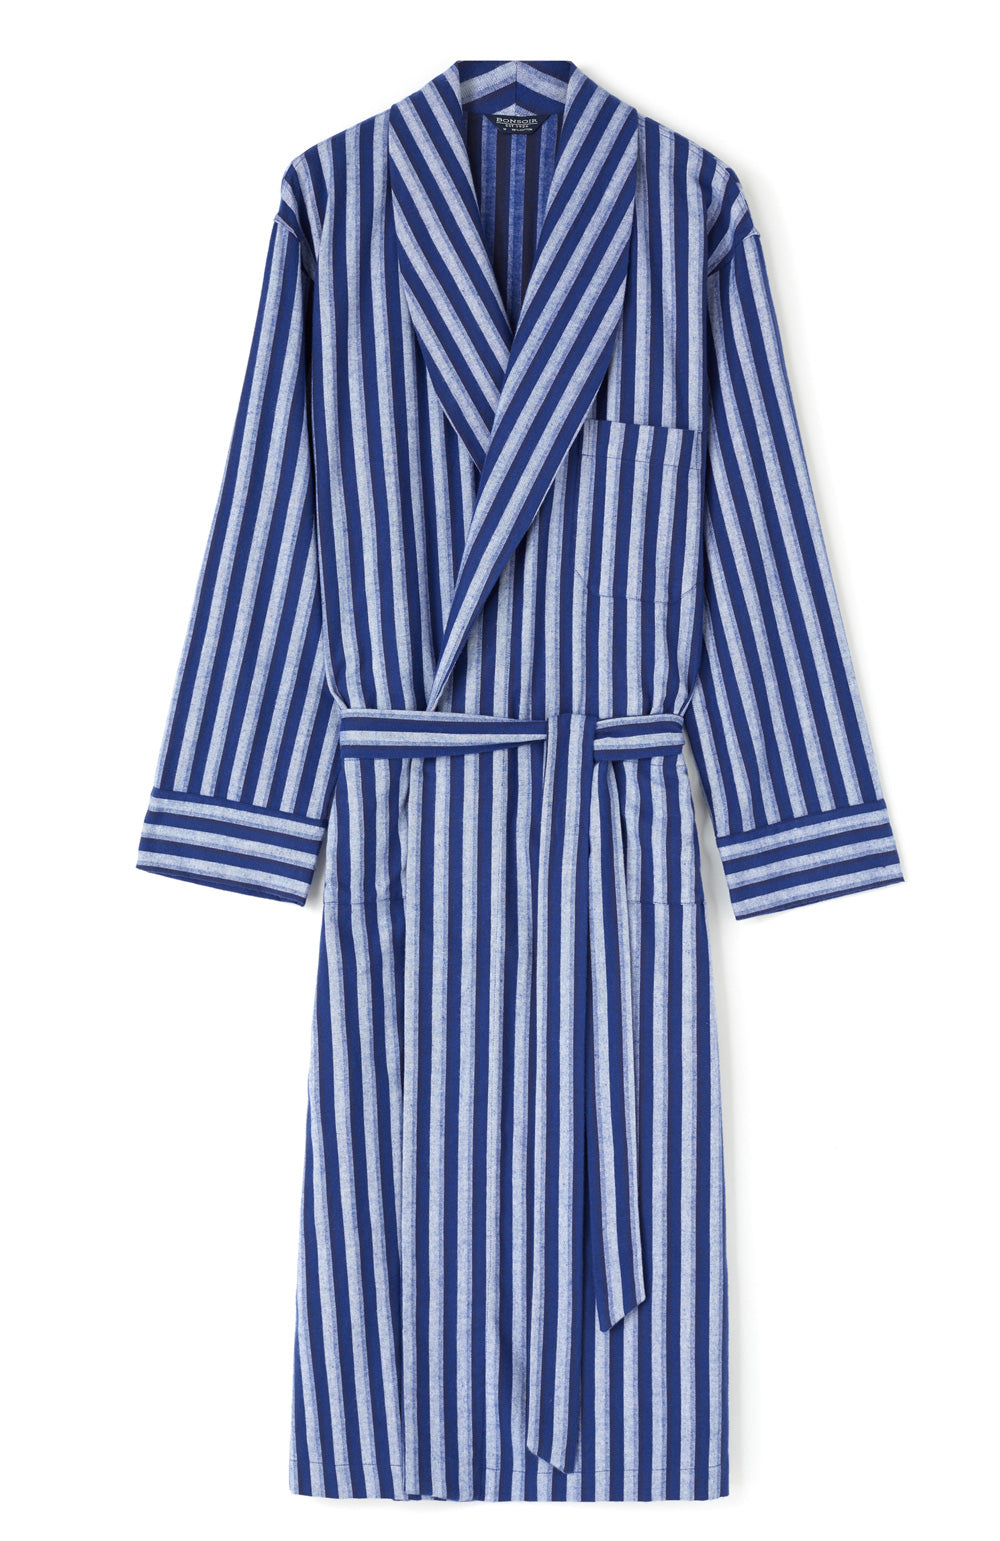 Brushed Cotton Dark Blue Stripe Gown | Bonsoir of London